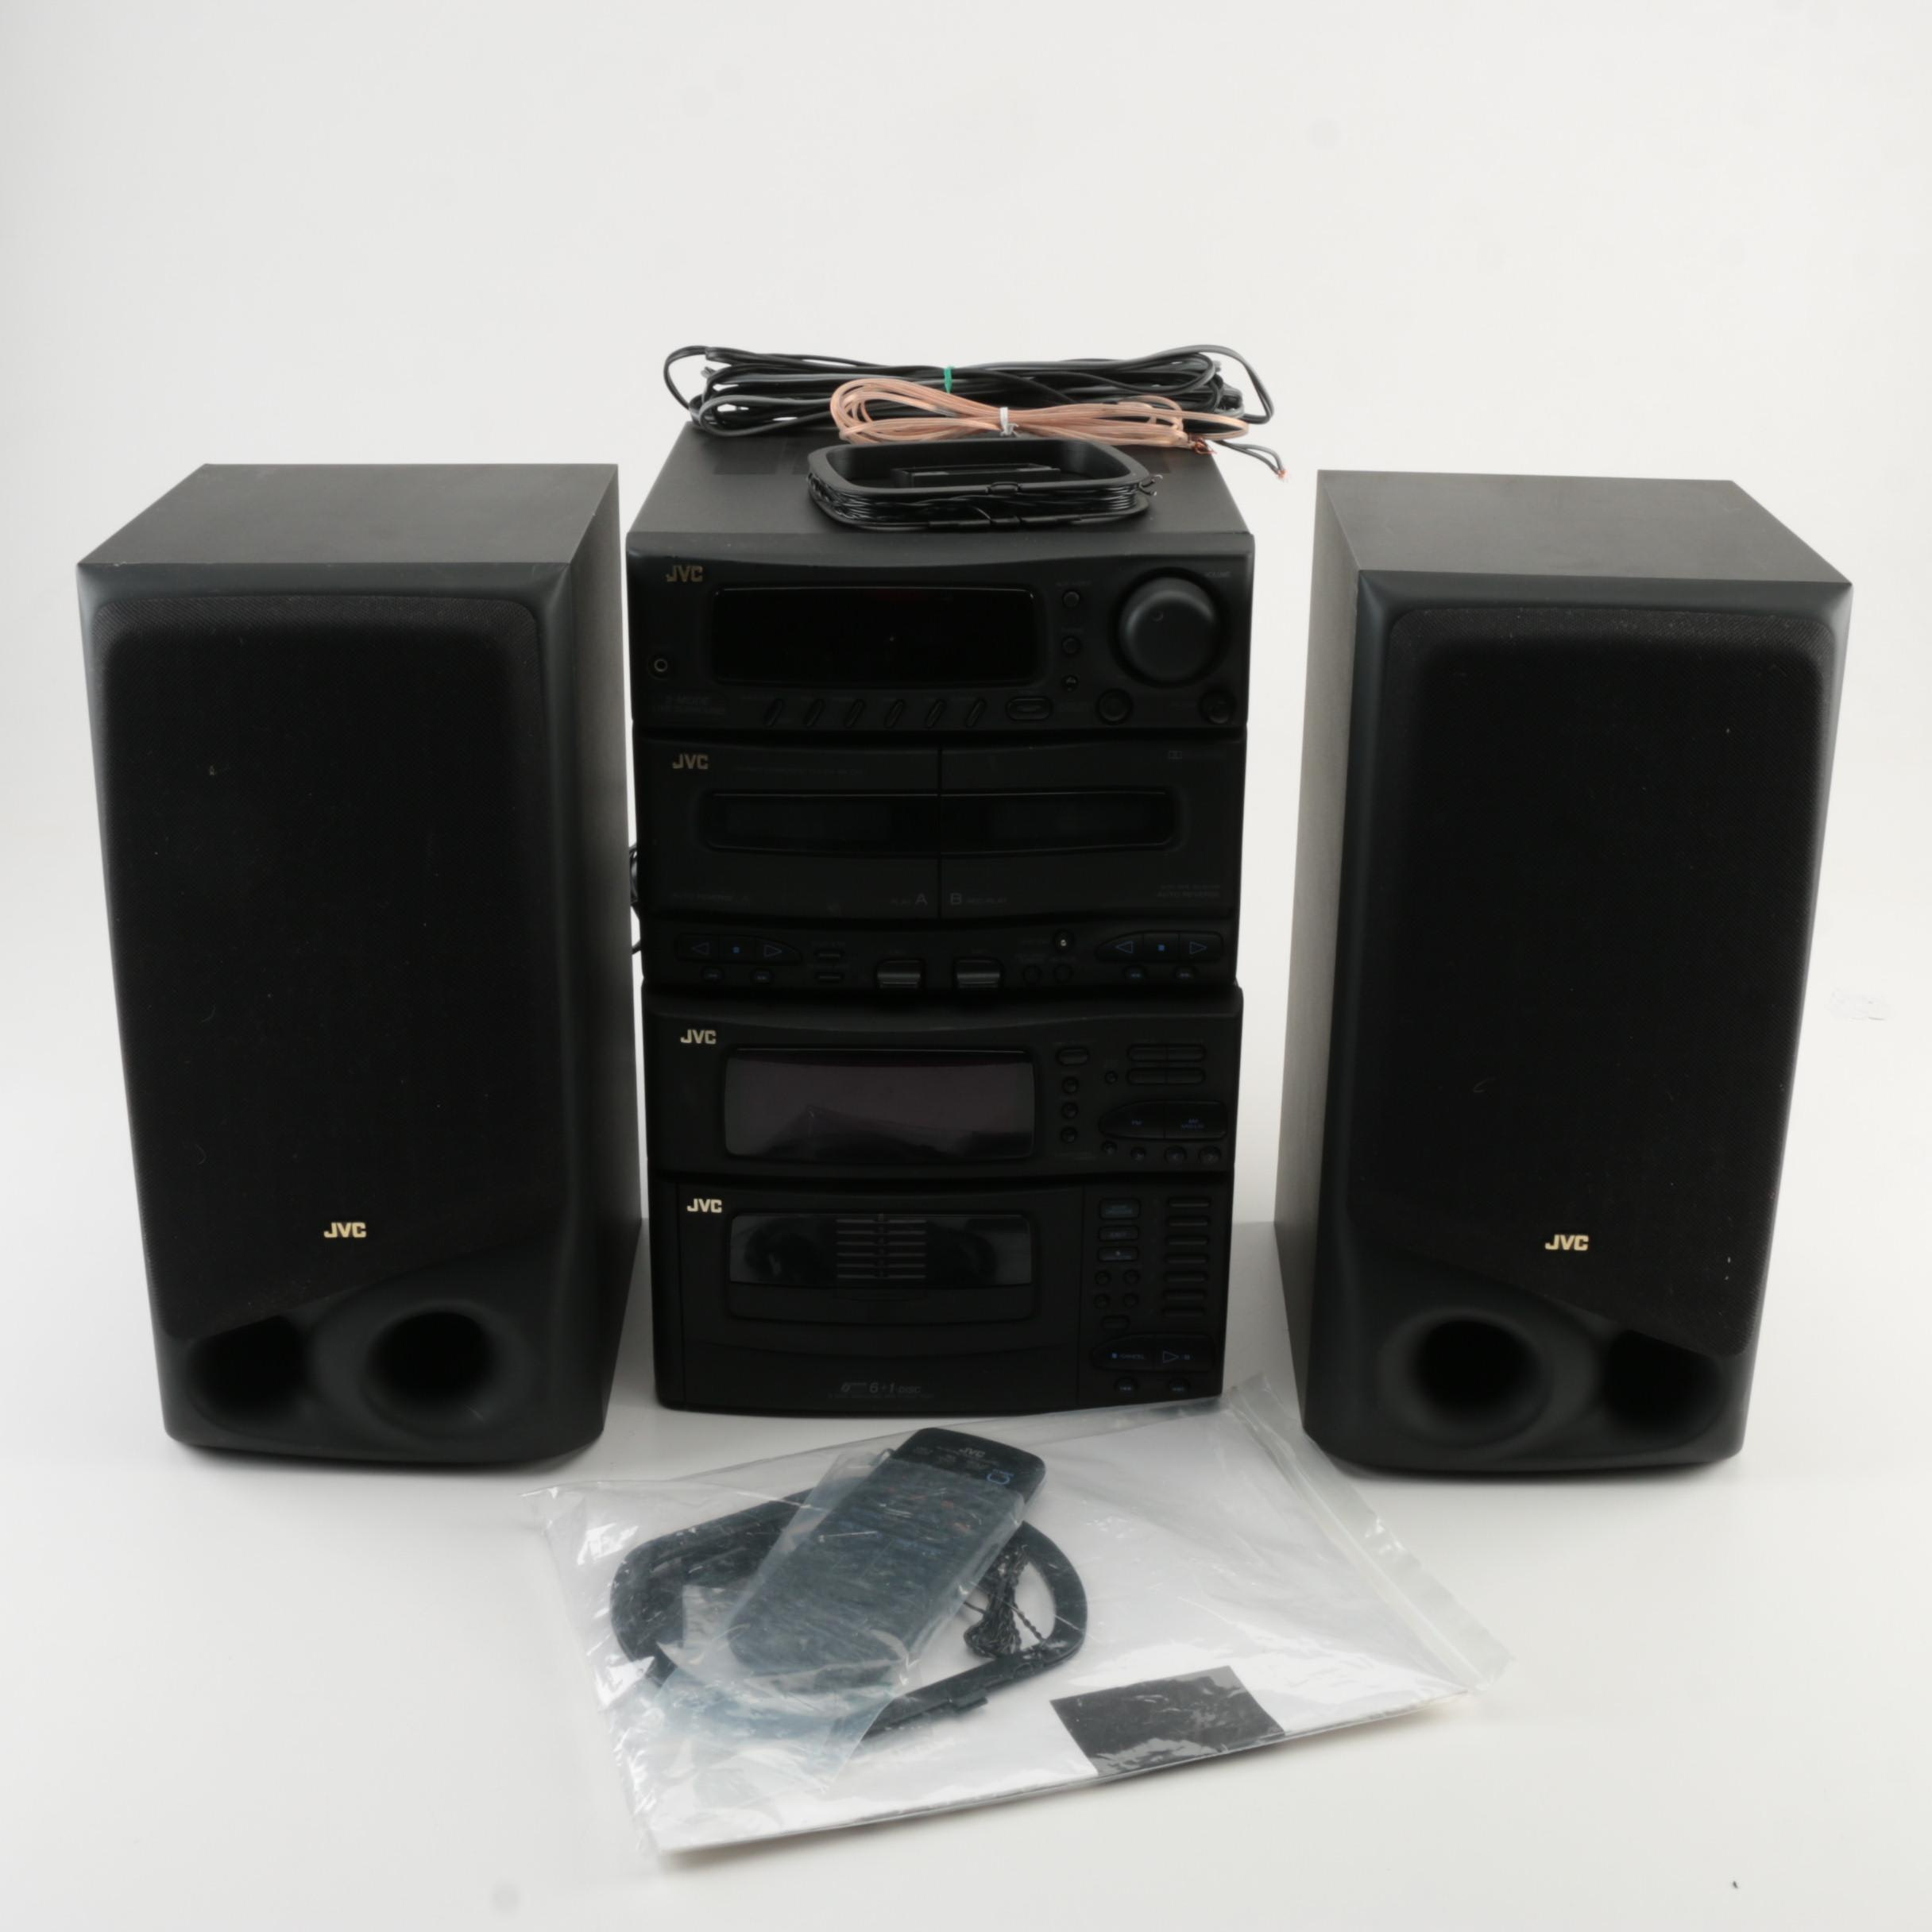 JVC CD Stereo and Speakers